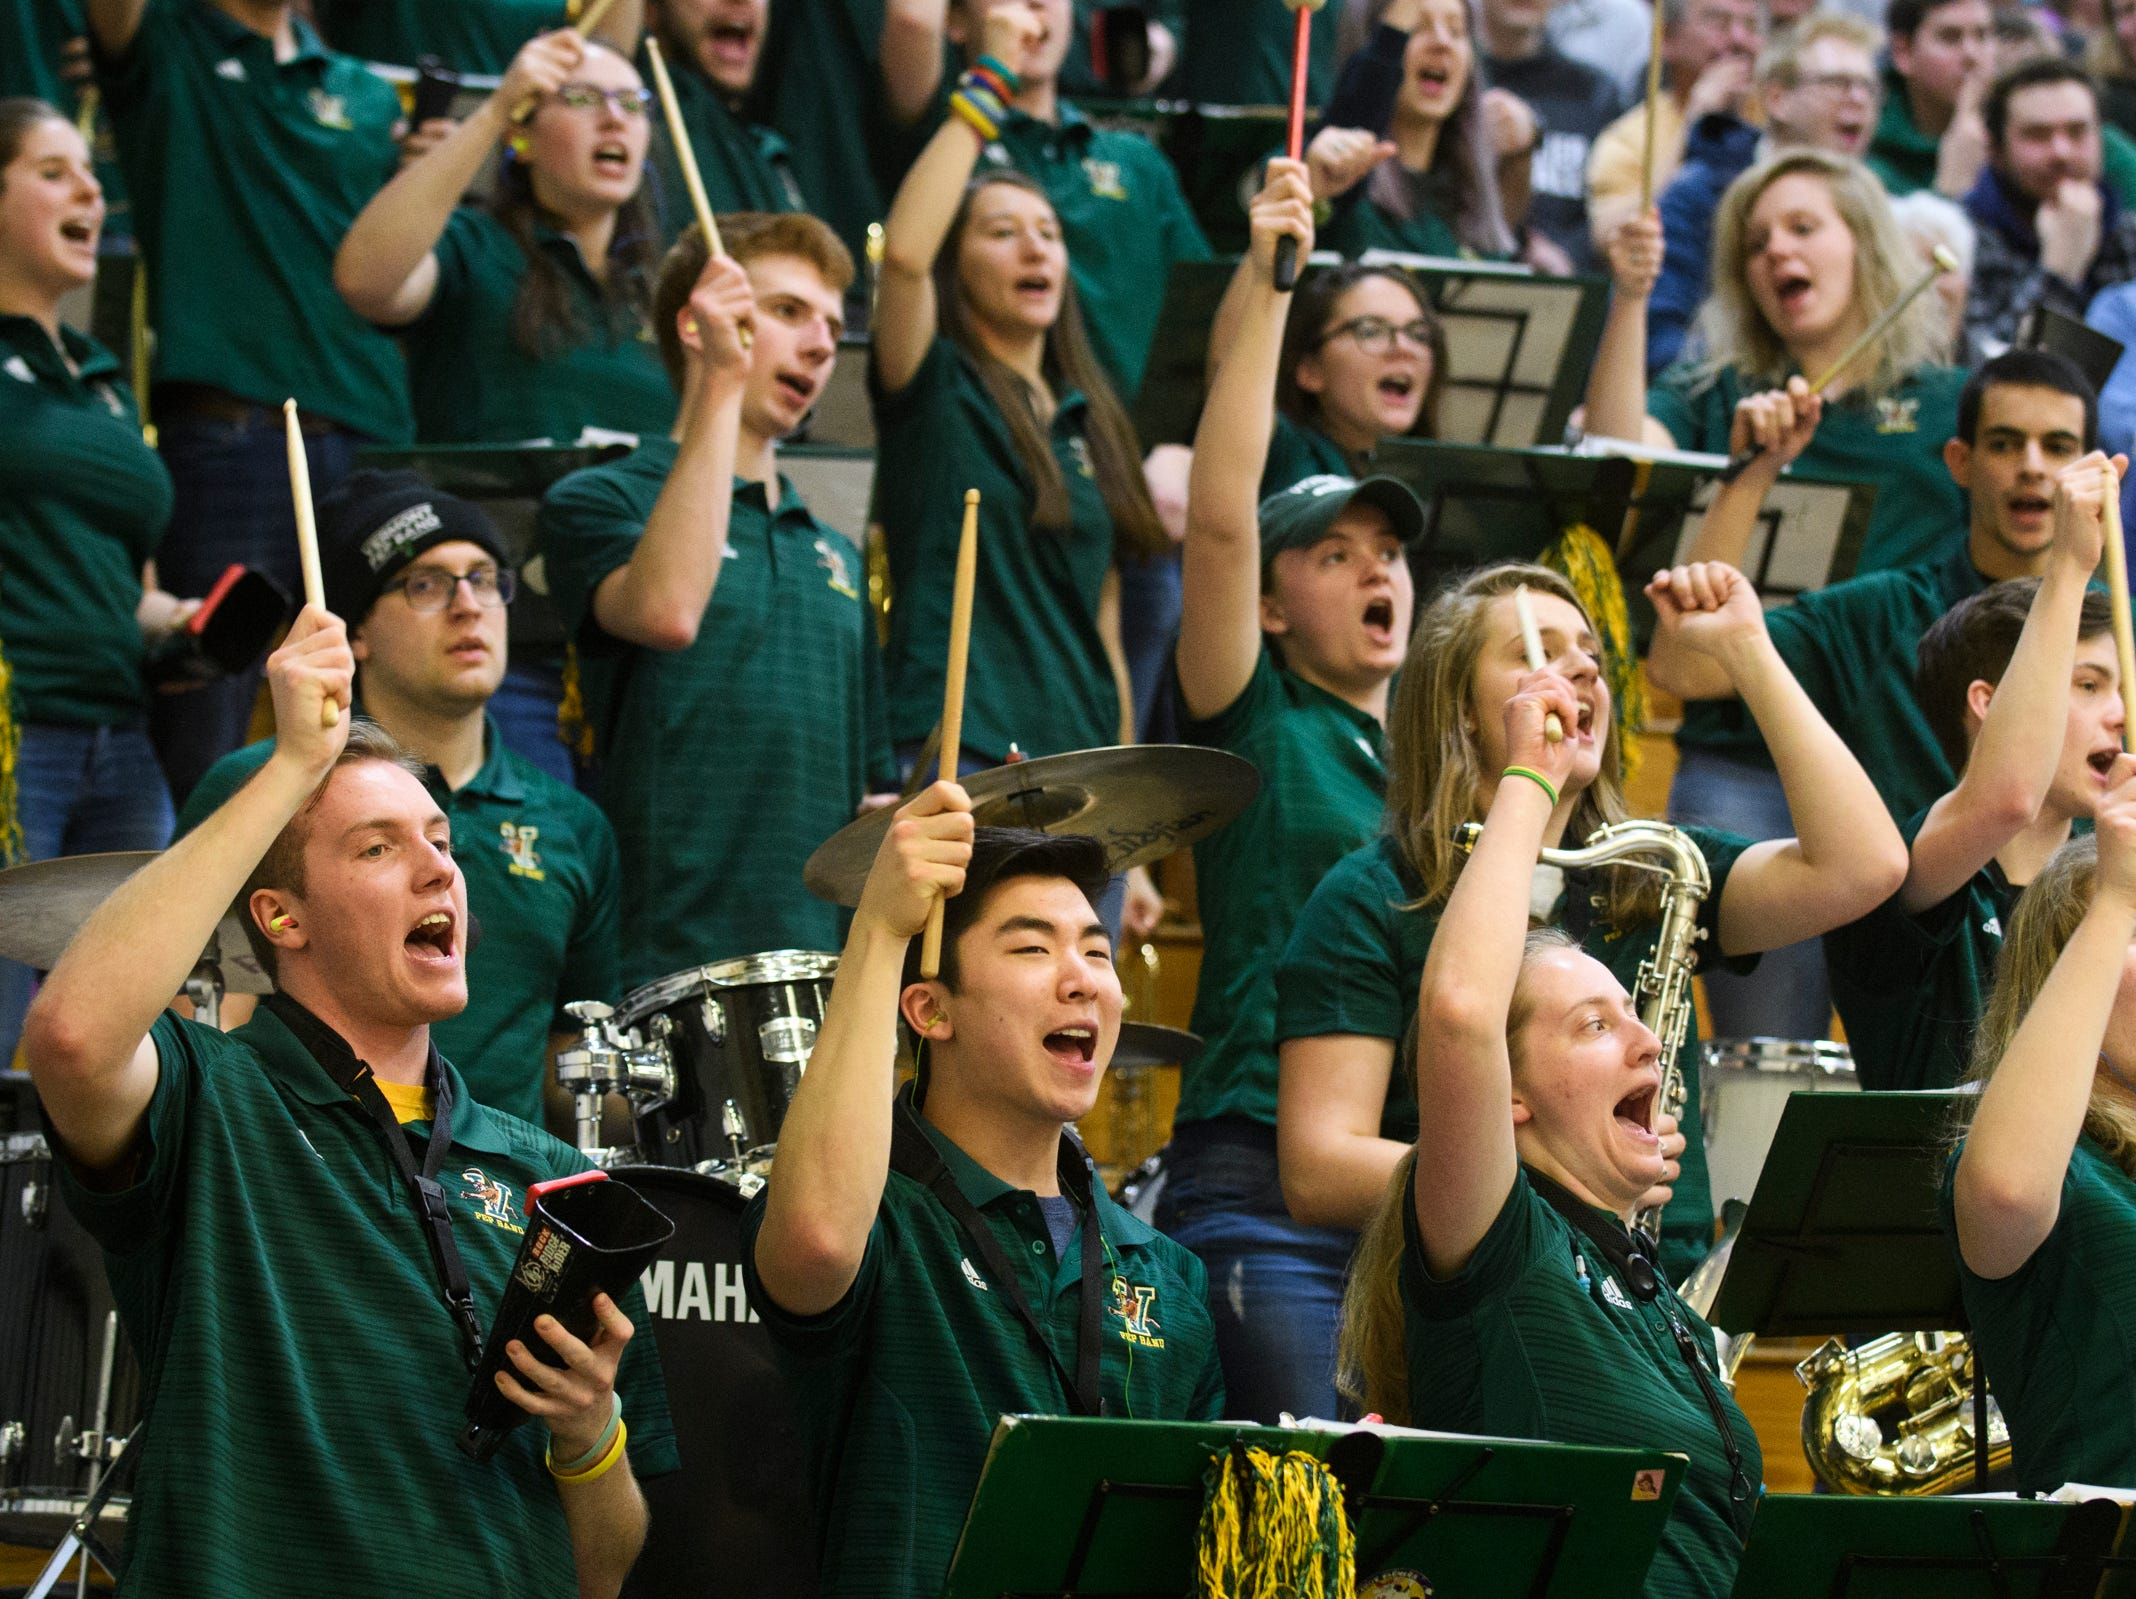 The Vermont pep band cheers for the team during the men's basketball game between the Stony Brook Seawolves and the Vermont Catamounts at Patrick Gym on Saturday night March 2, 2019 in Burlington, Vermont.